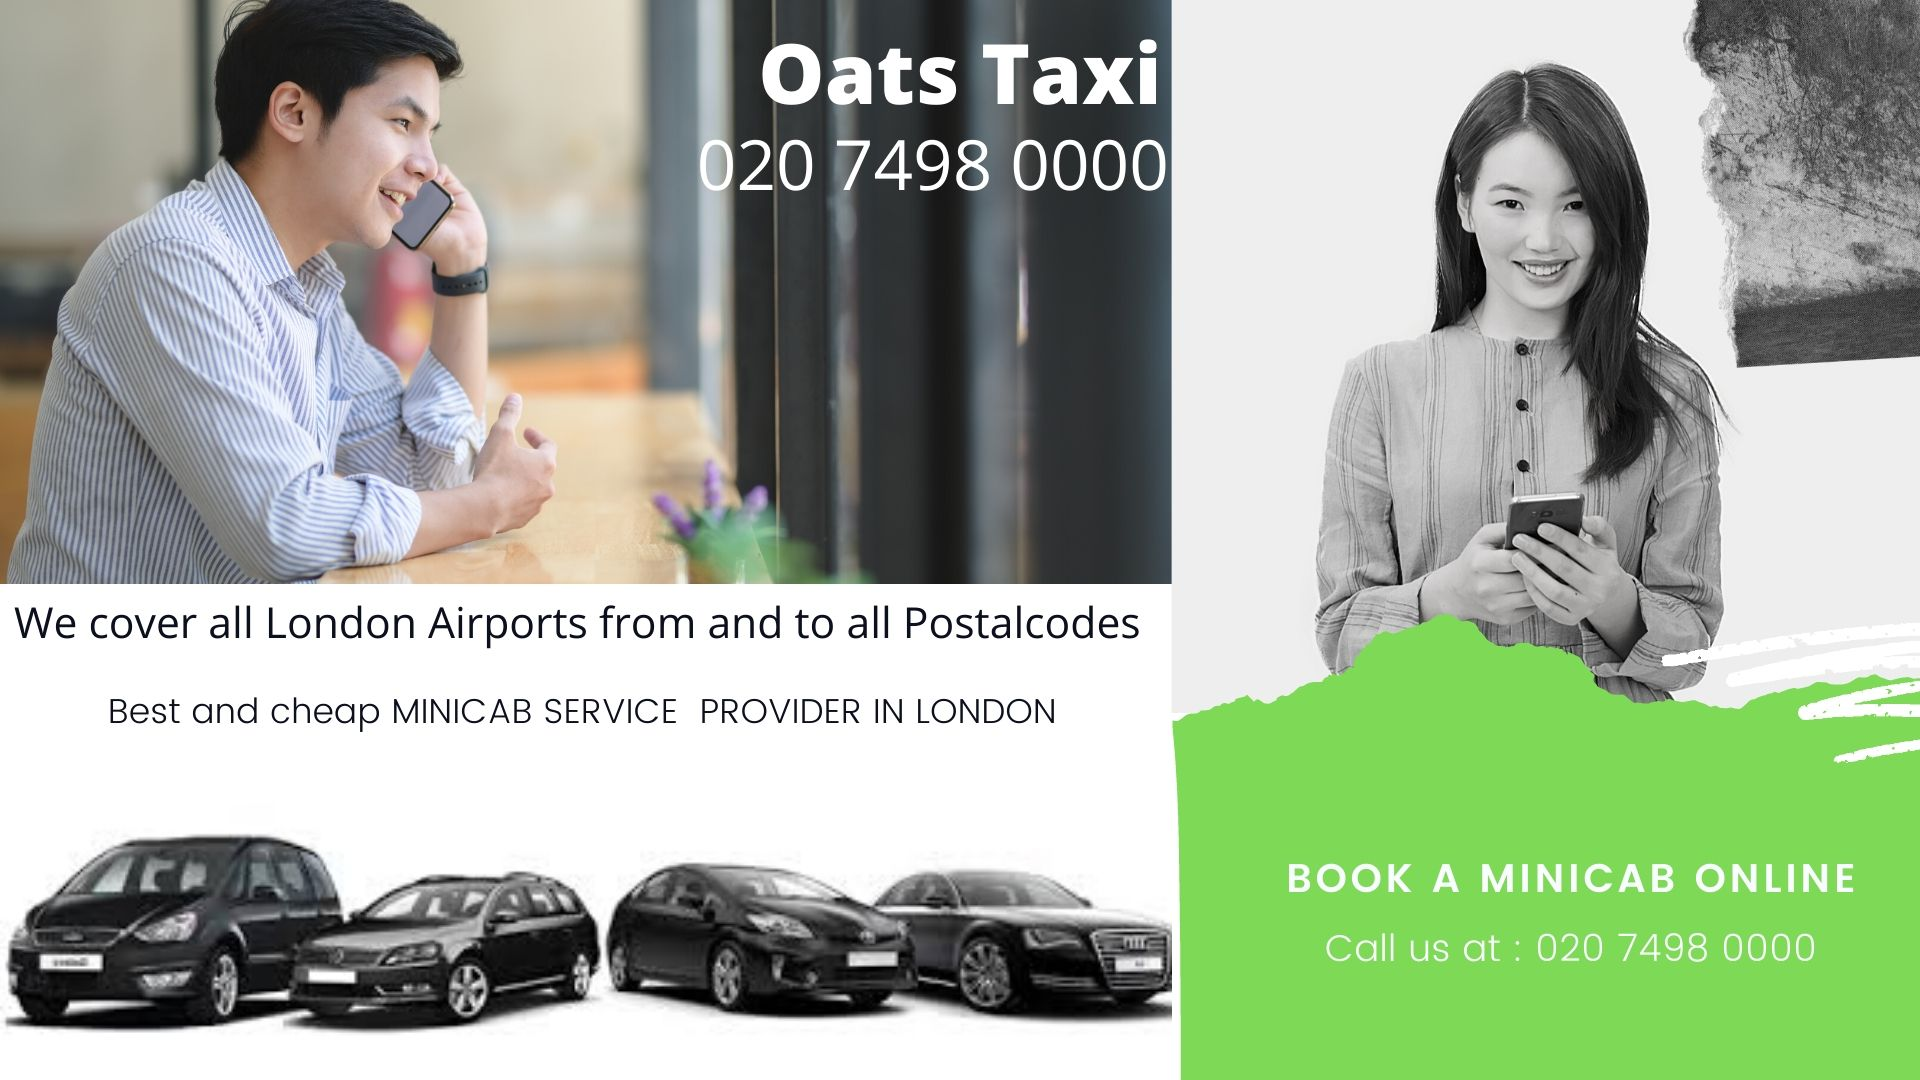 Nearest Minicab Office in Parsons Green | Minicab Gatwick Airport | Call now : 02074980000